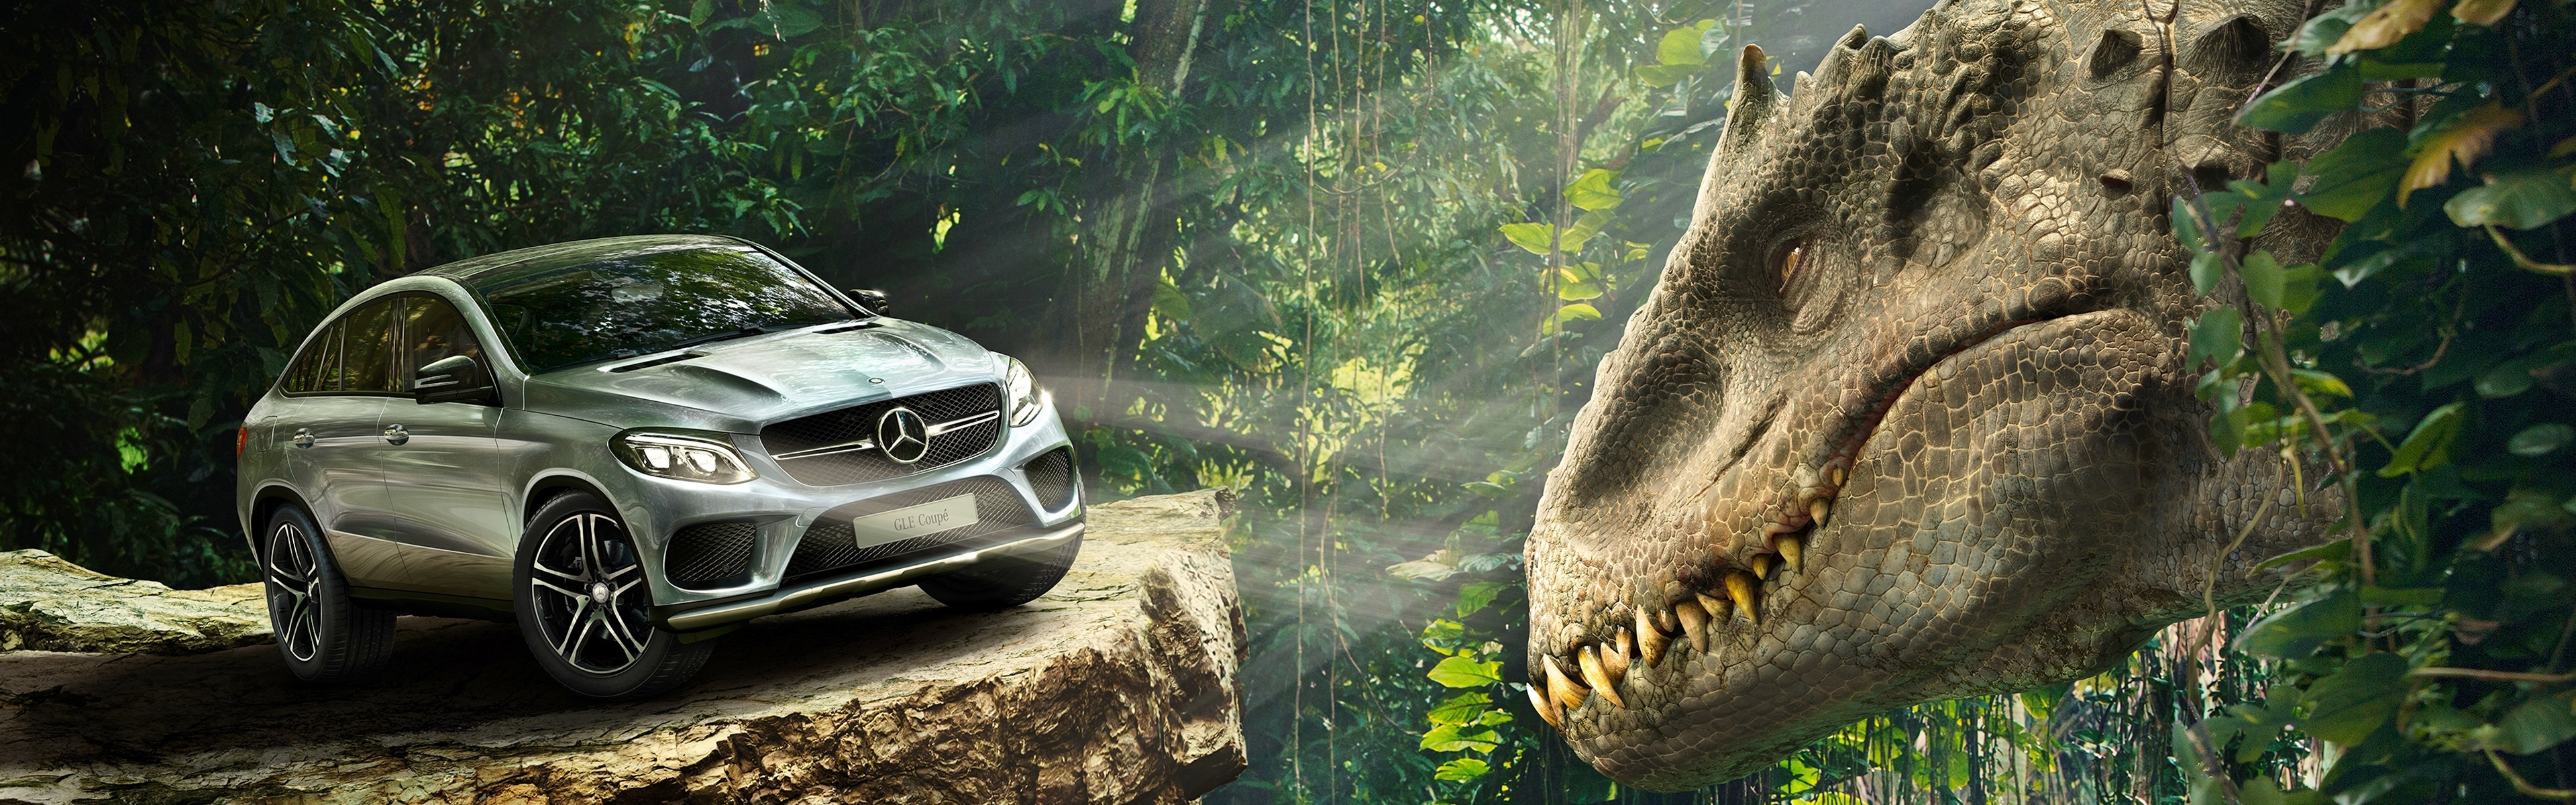 Mercedes Benz GLE Coupe Jurassic World Wallpapers in jpg format for